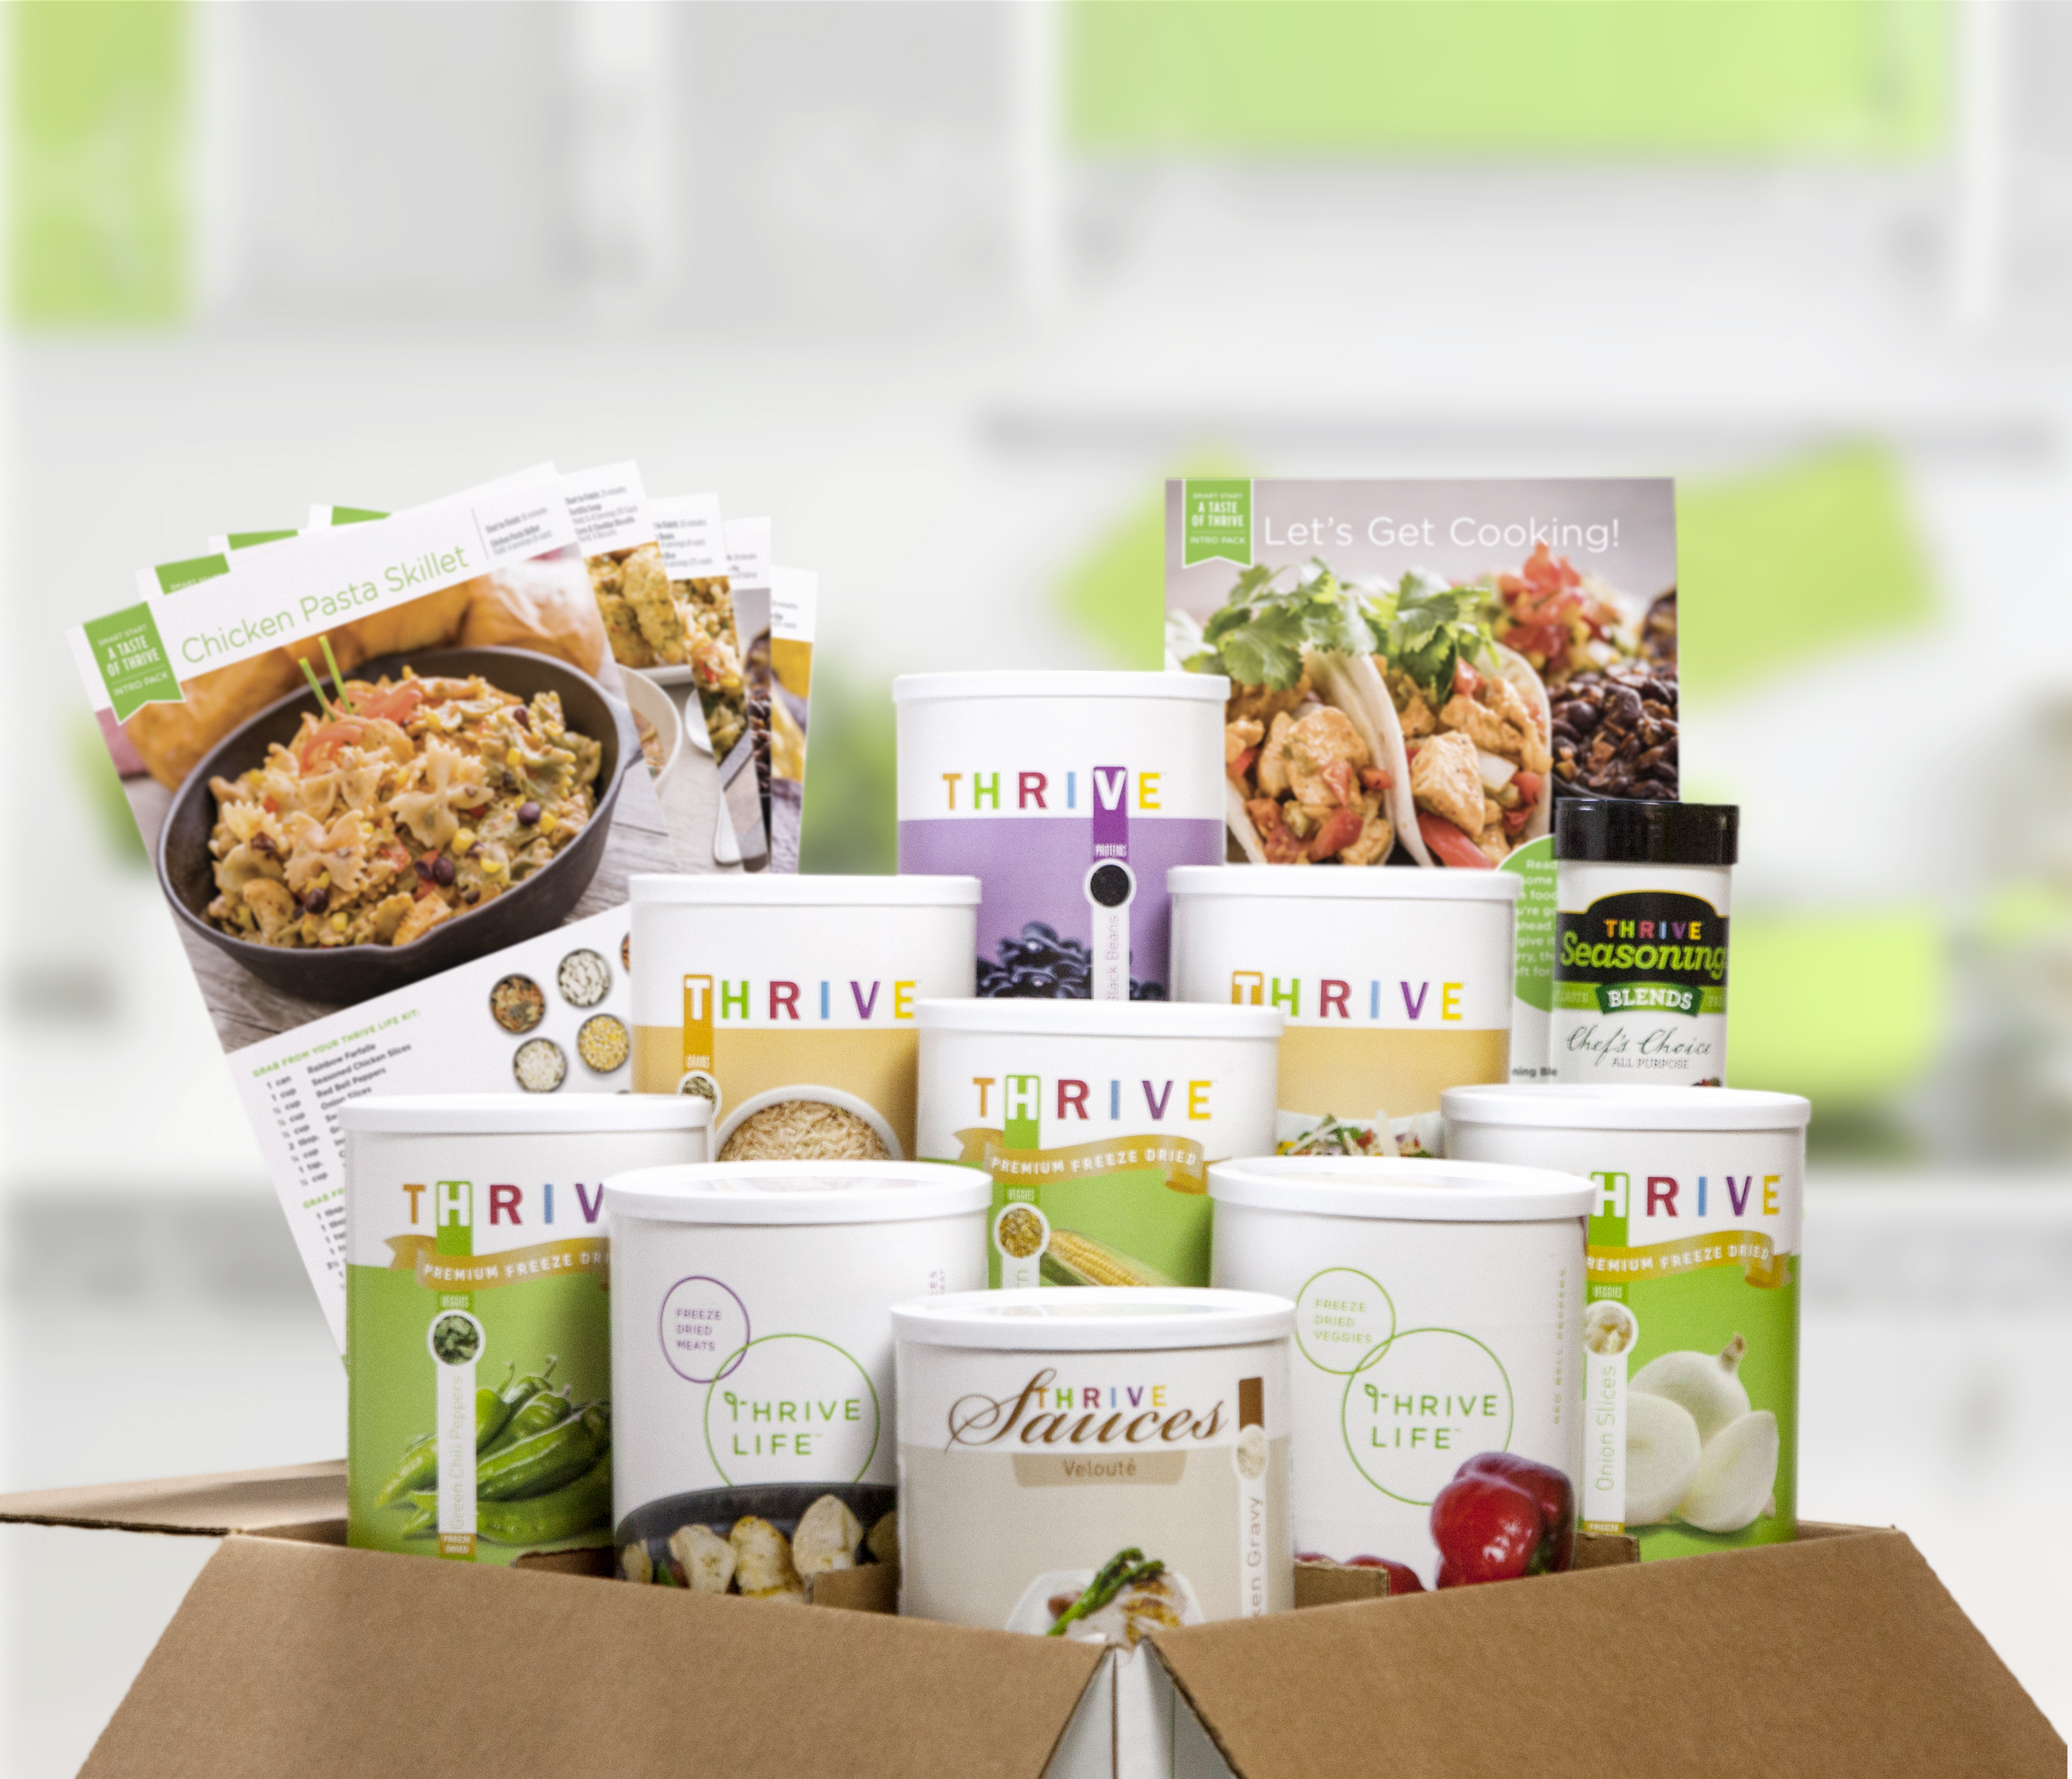 Intro Pack - Smart Start: A Taste of THRIVE